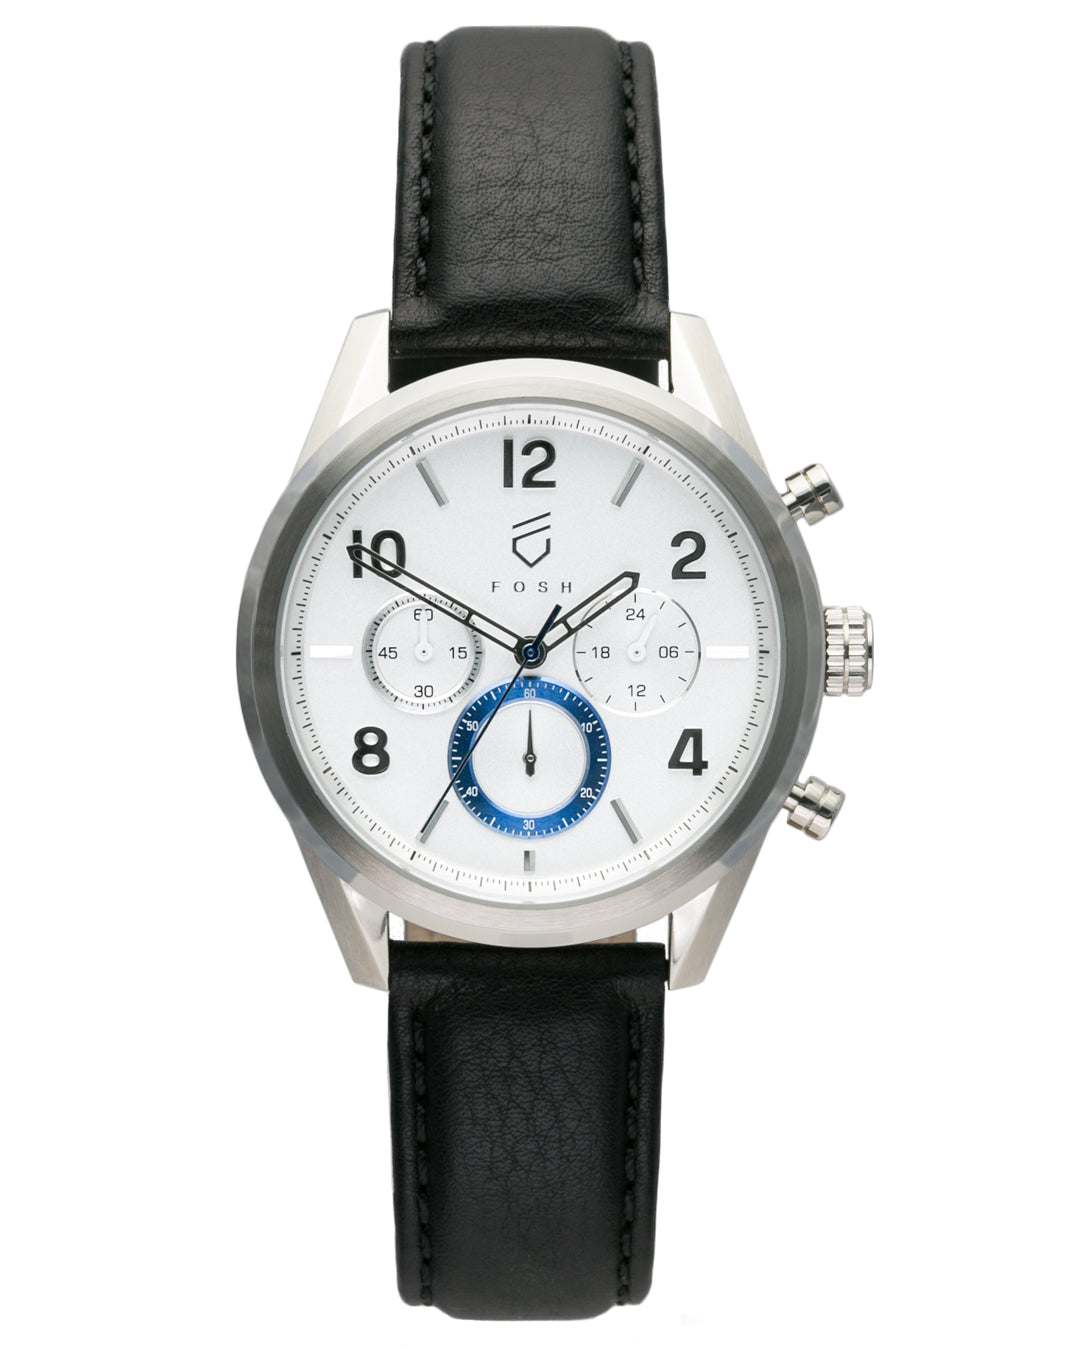 chronograph watch white and blue second hand with stainless steel case and interchangeable straps